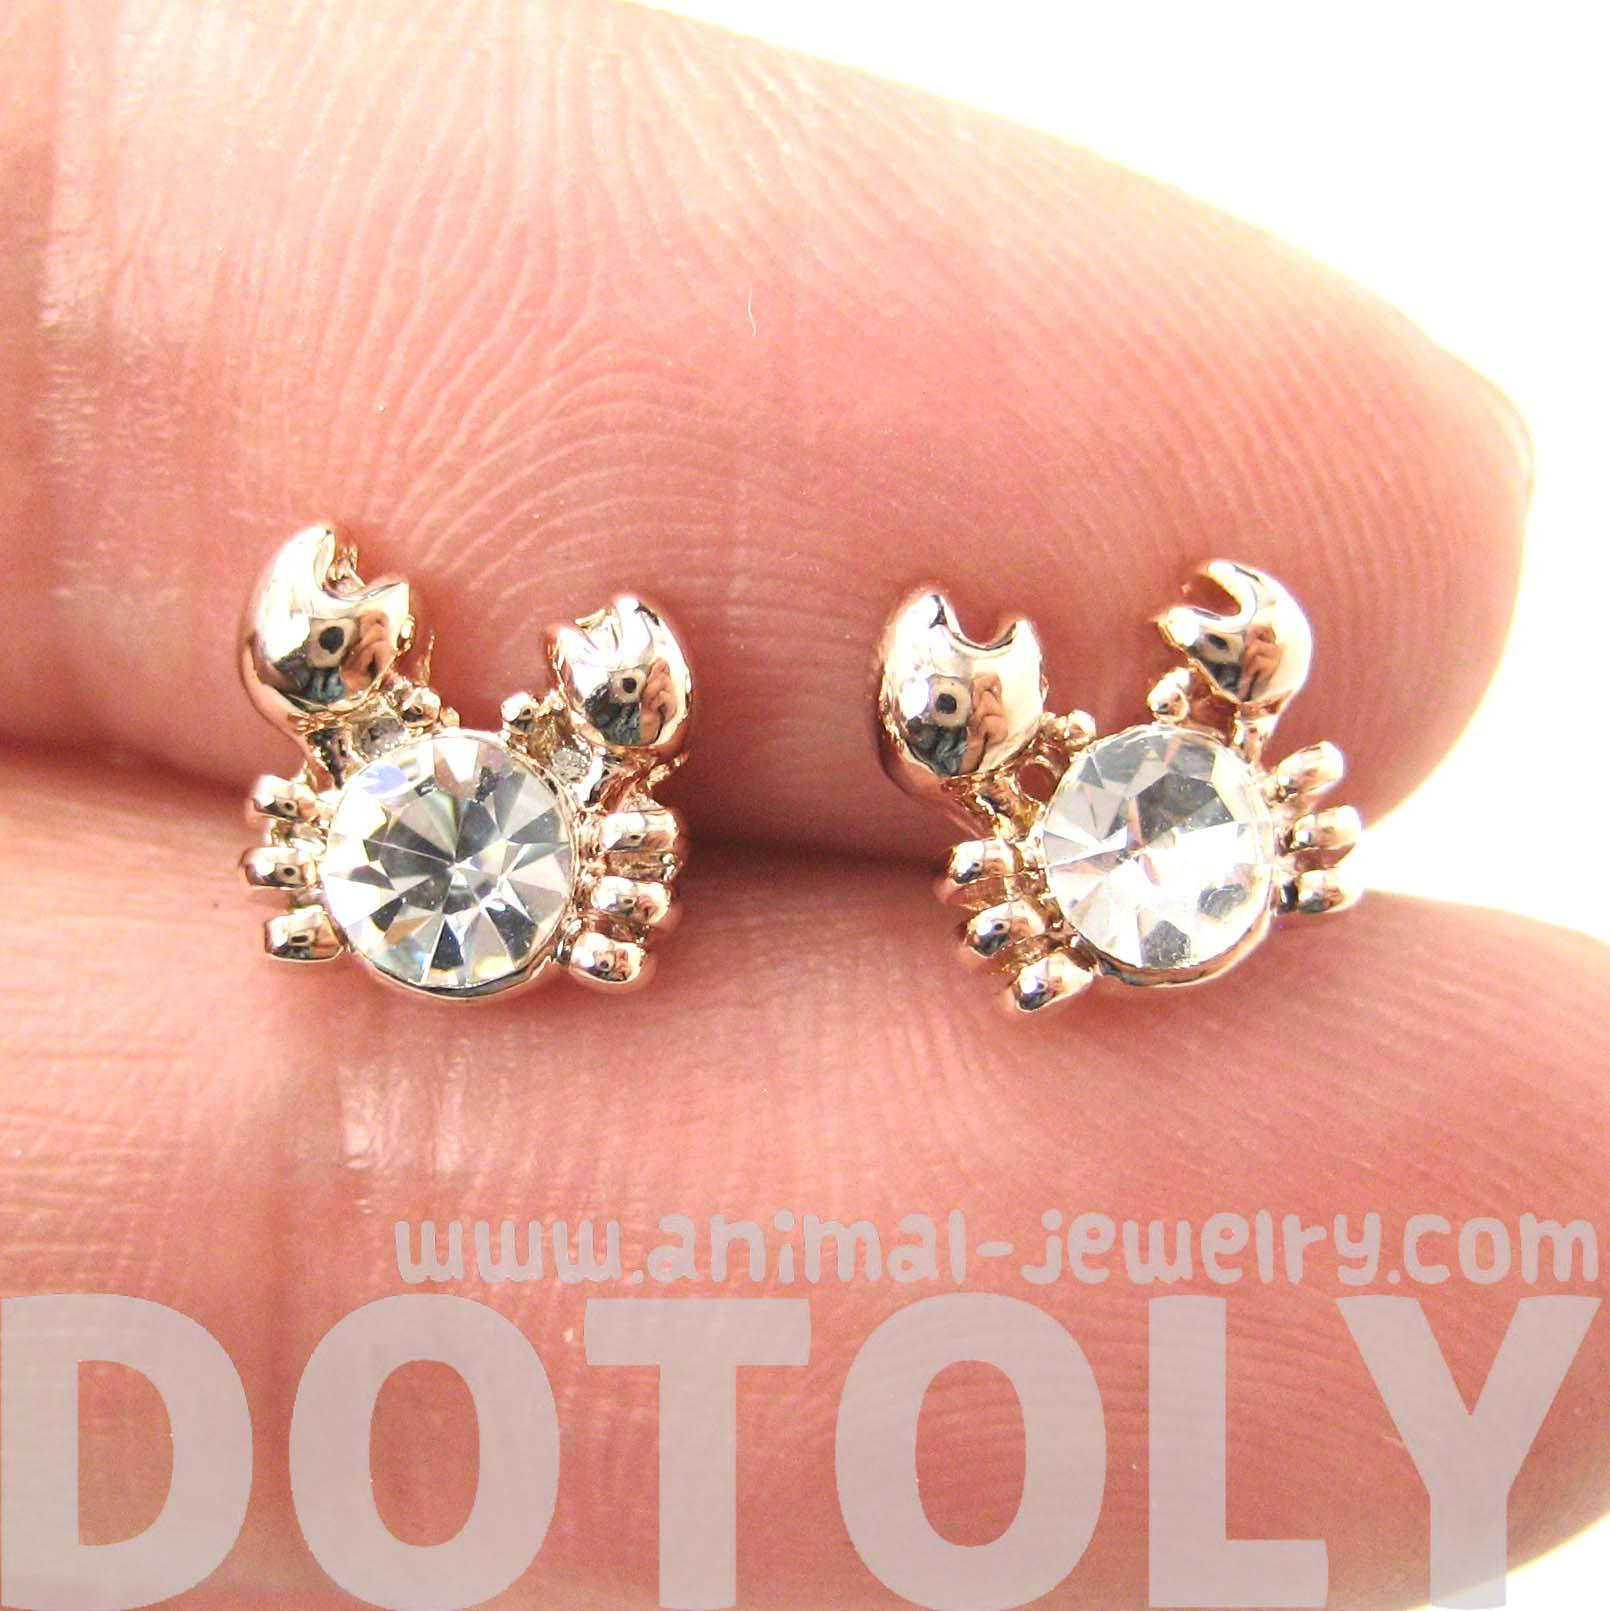 tiny-crab-sea-creatures-shaped-stud-earrings-in-rose-gold-with-rhinestones